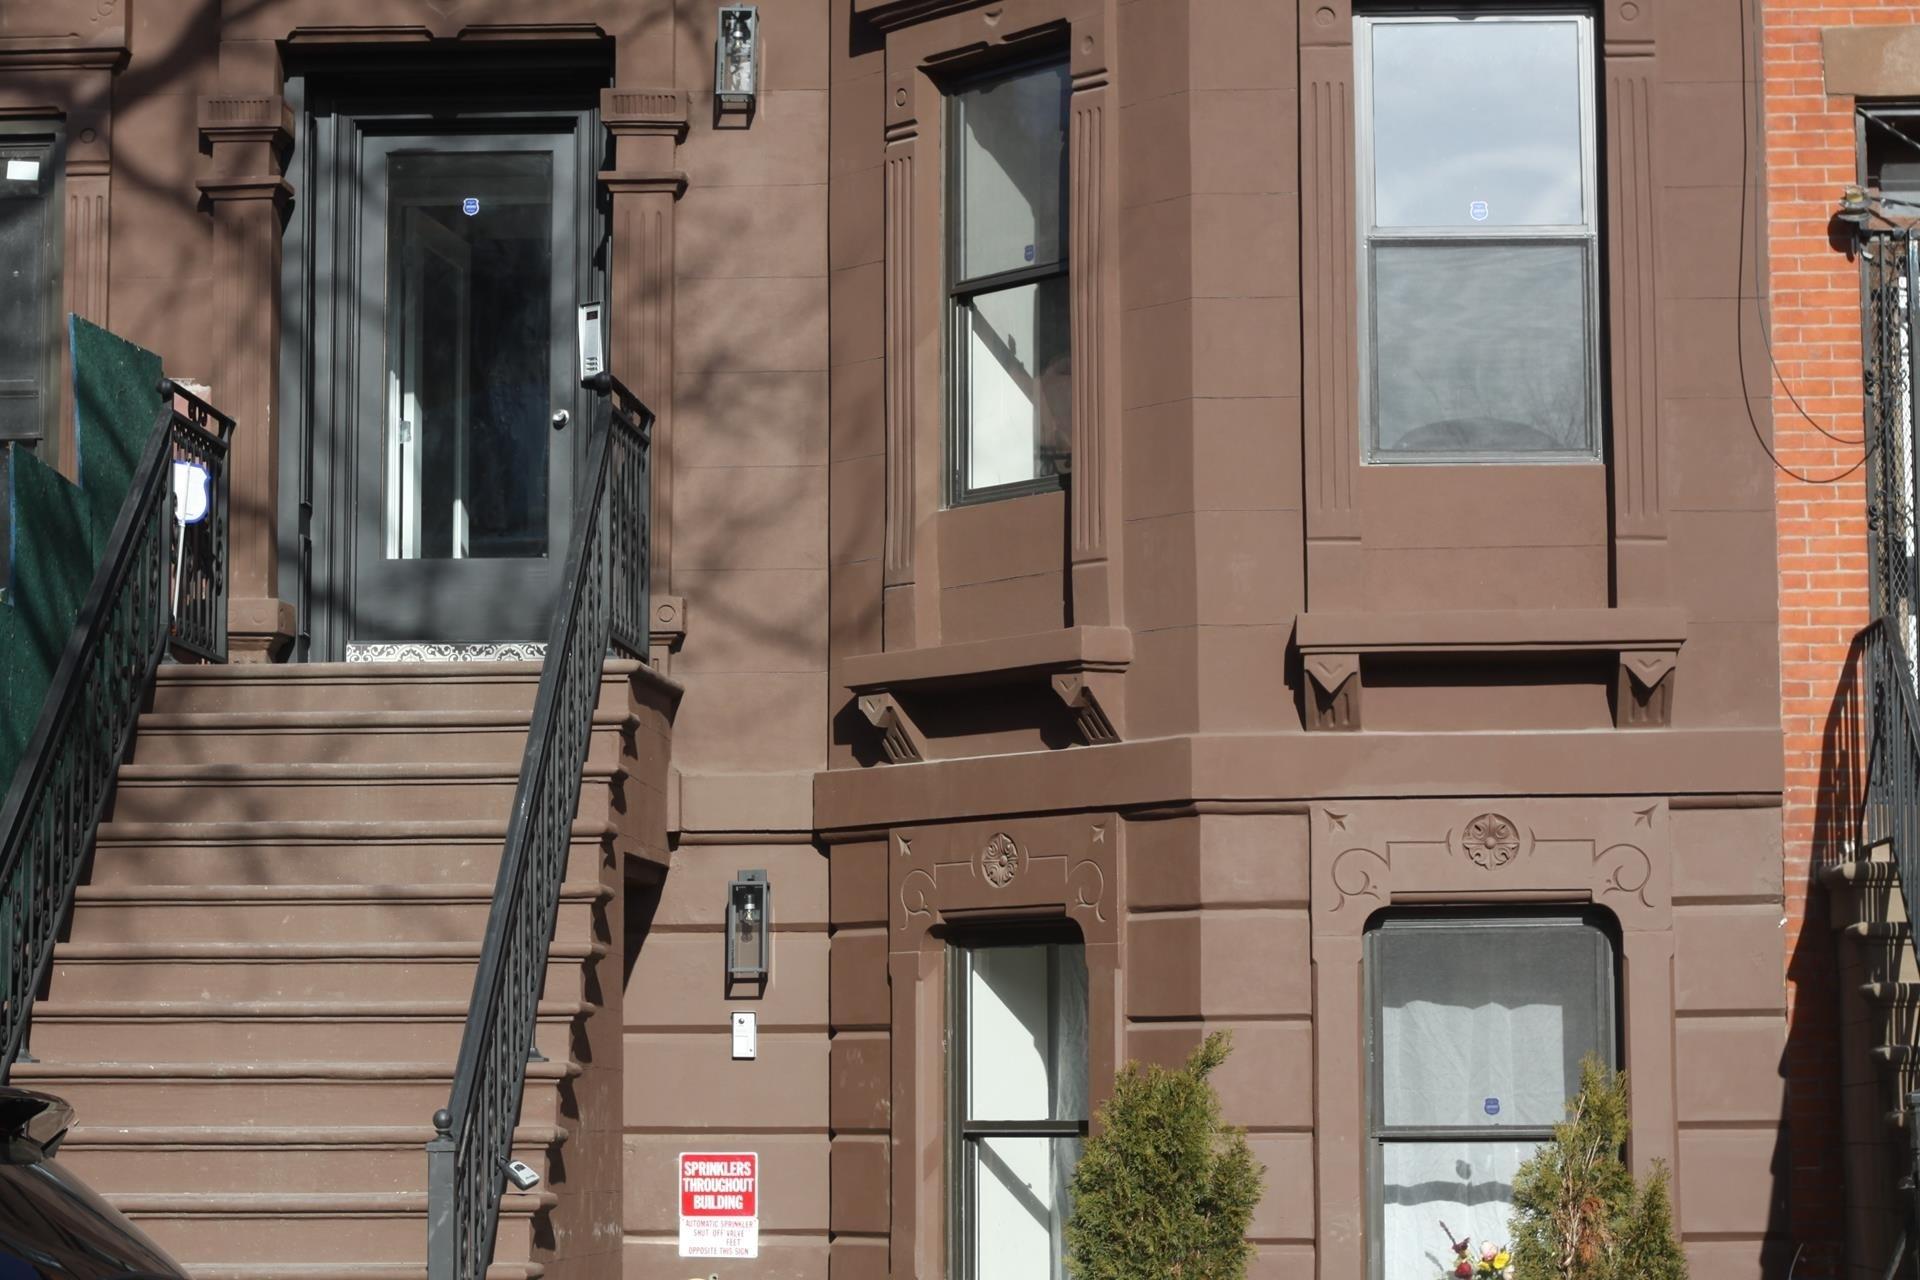 6. Condominiums for Sale at 695 Monroe St, 2 Bedford Stuyvesant, Brooklyn, NY 11221